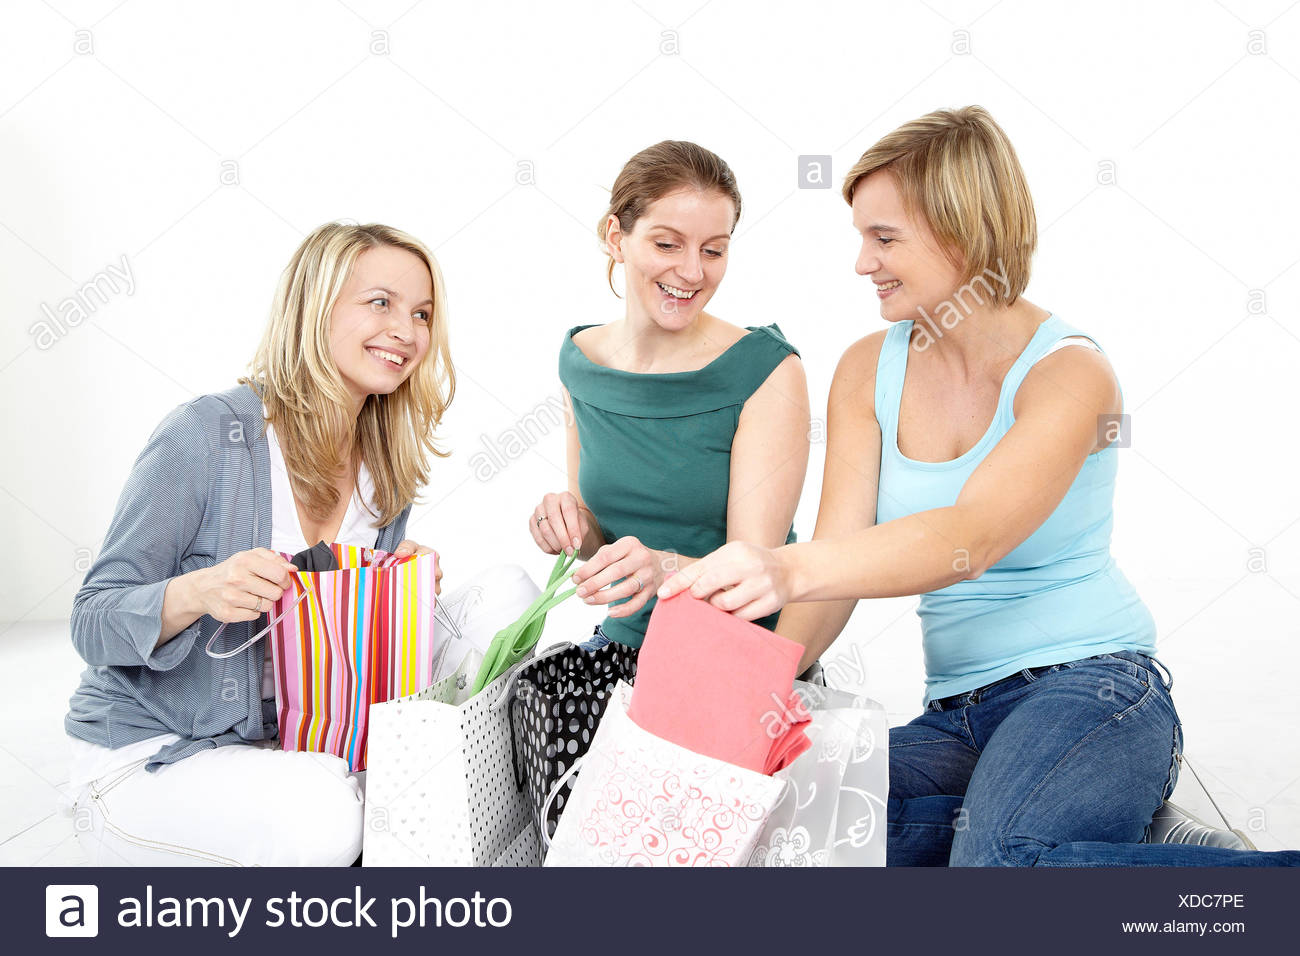 paperbags delighted unambitious - Stock Image